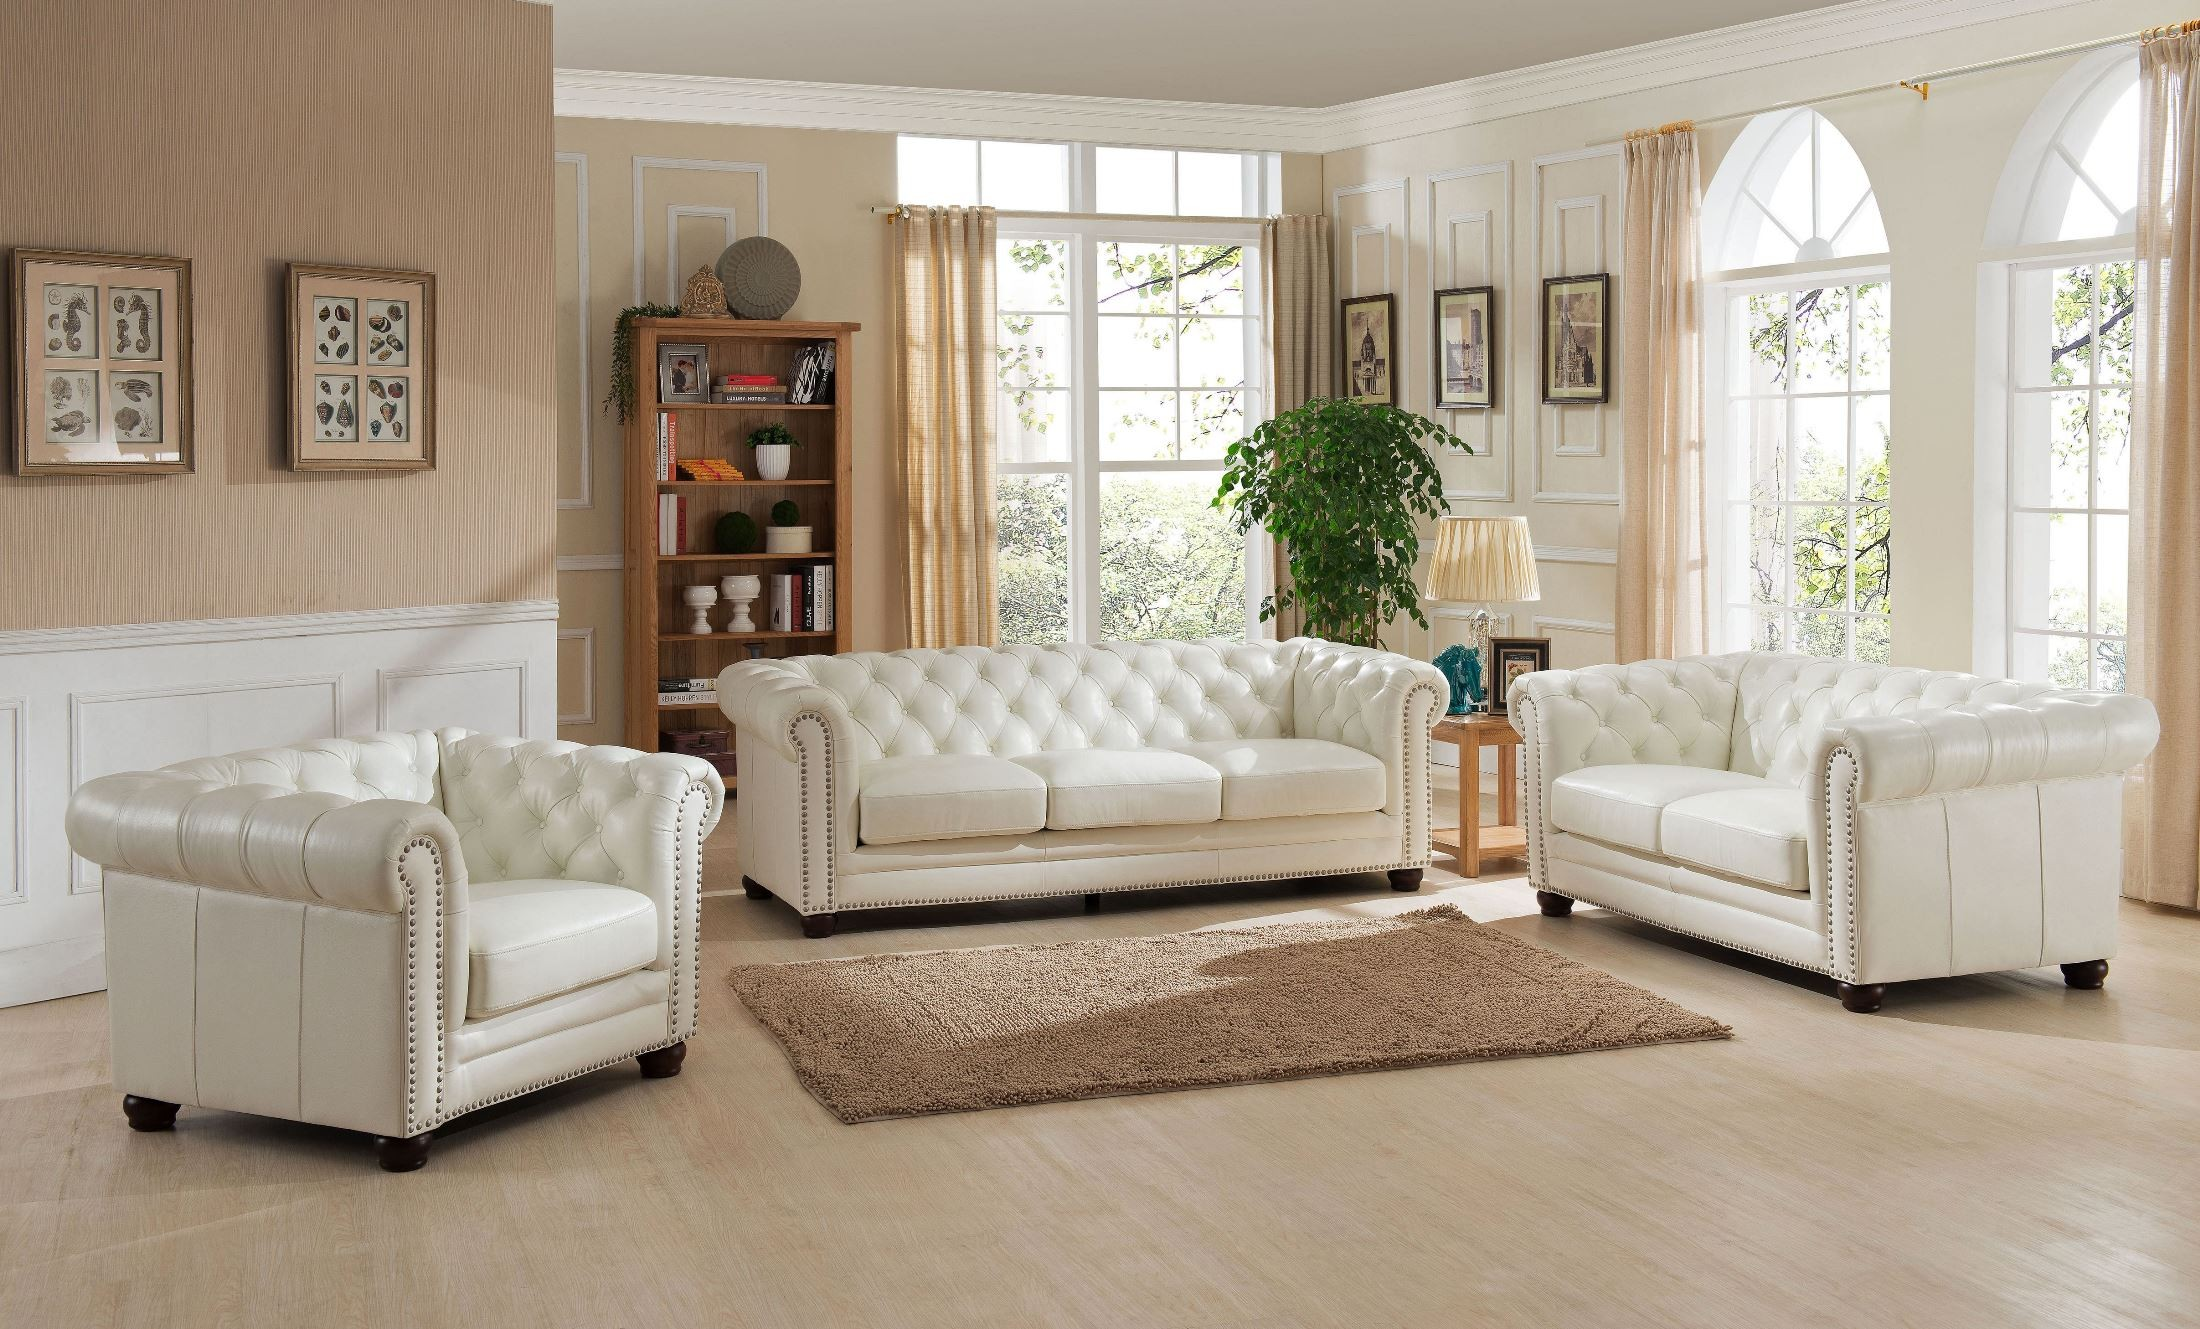 Leather Living Room Furnitures Monaco Pearl White Leather Living Room Set